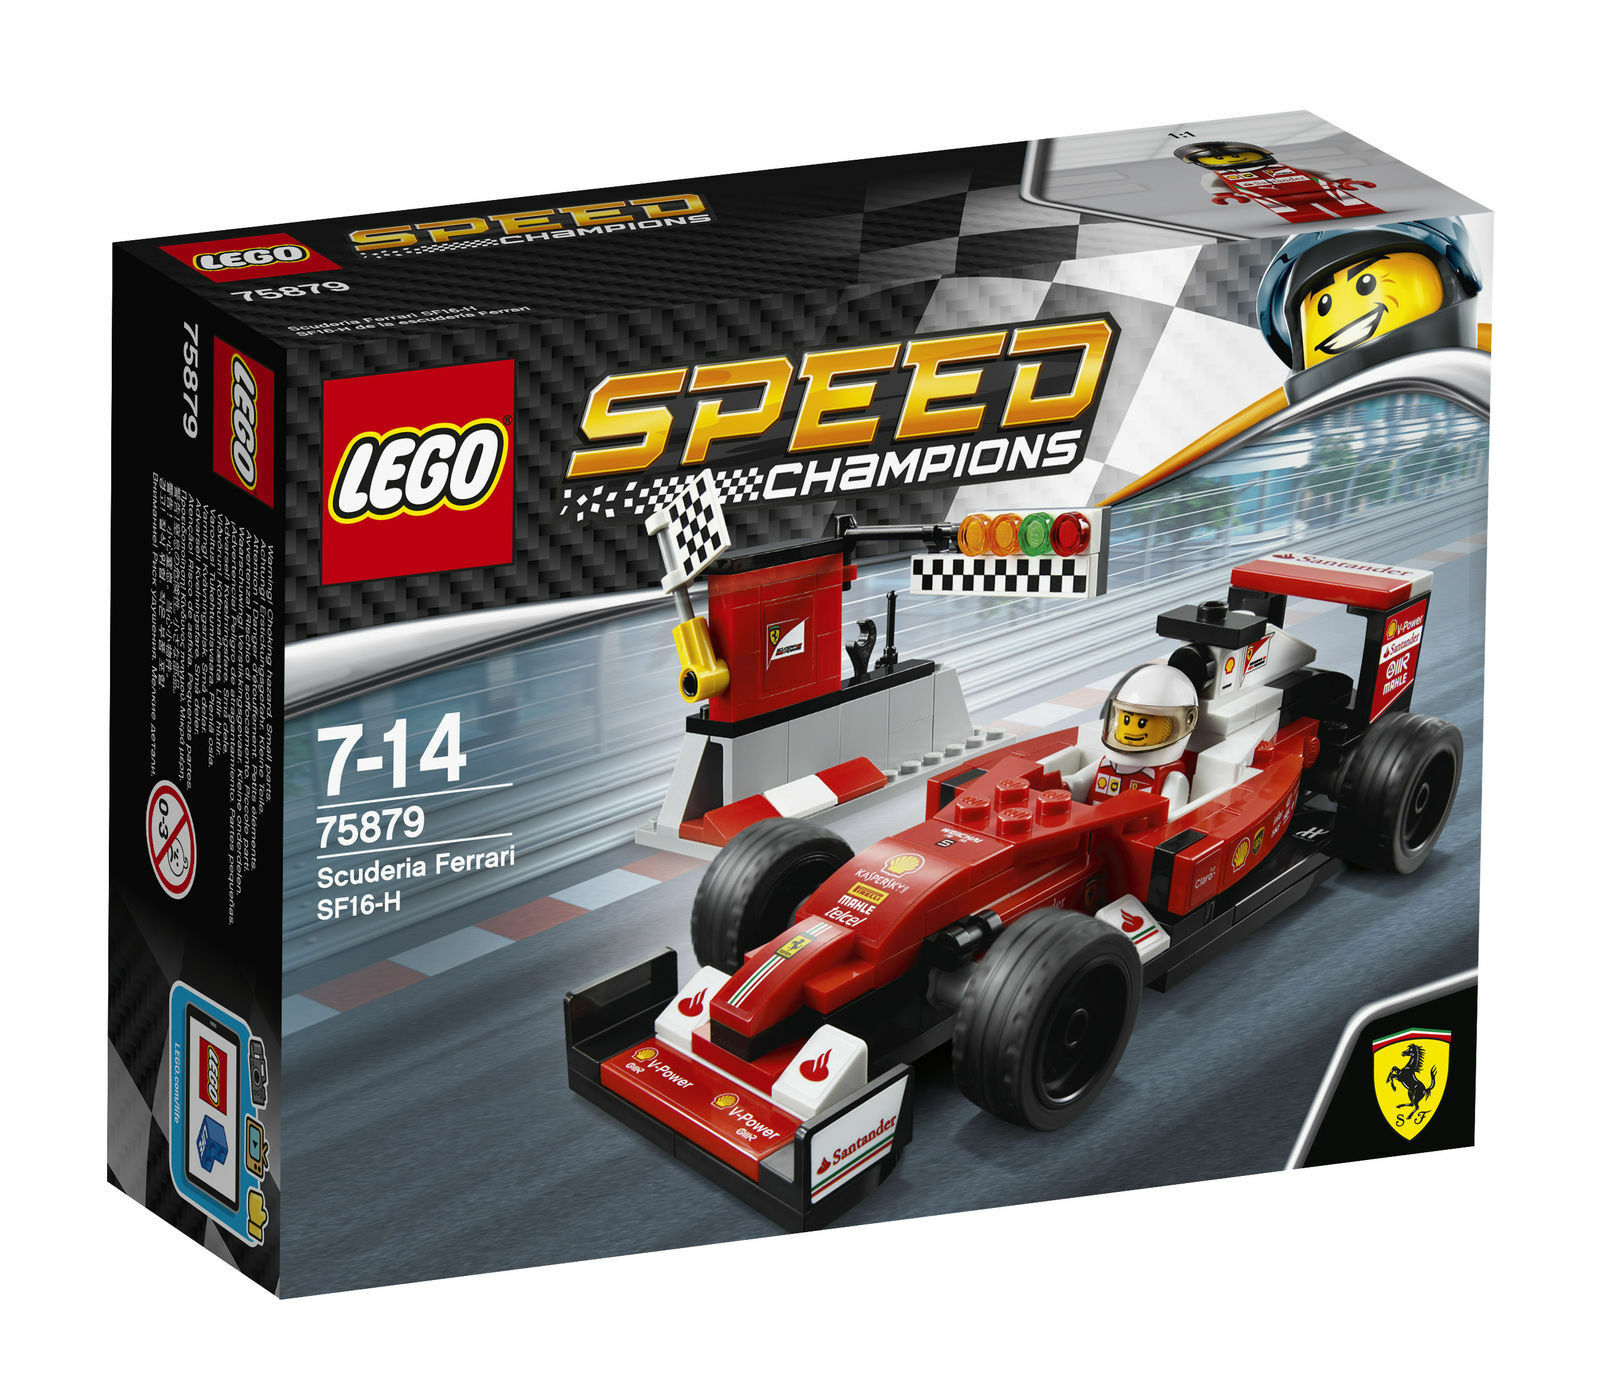 Lego Speed Champions 75879  Scuderia Ferrari SF16-H  Building Set